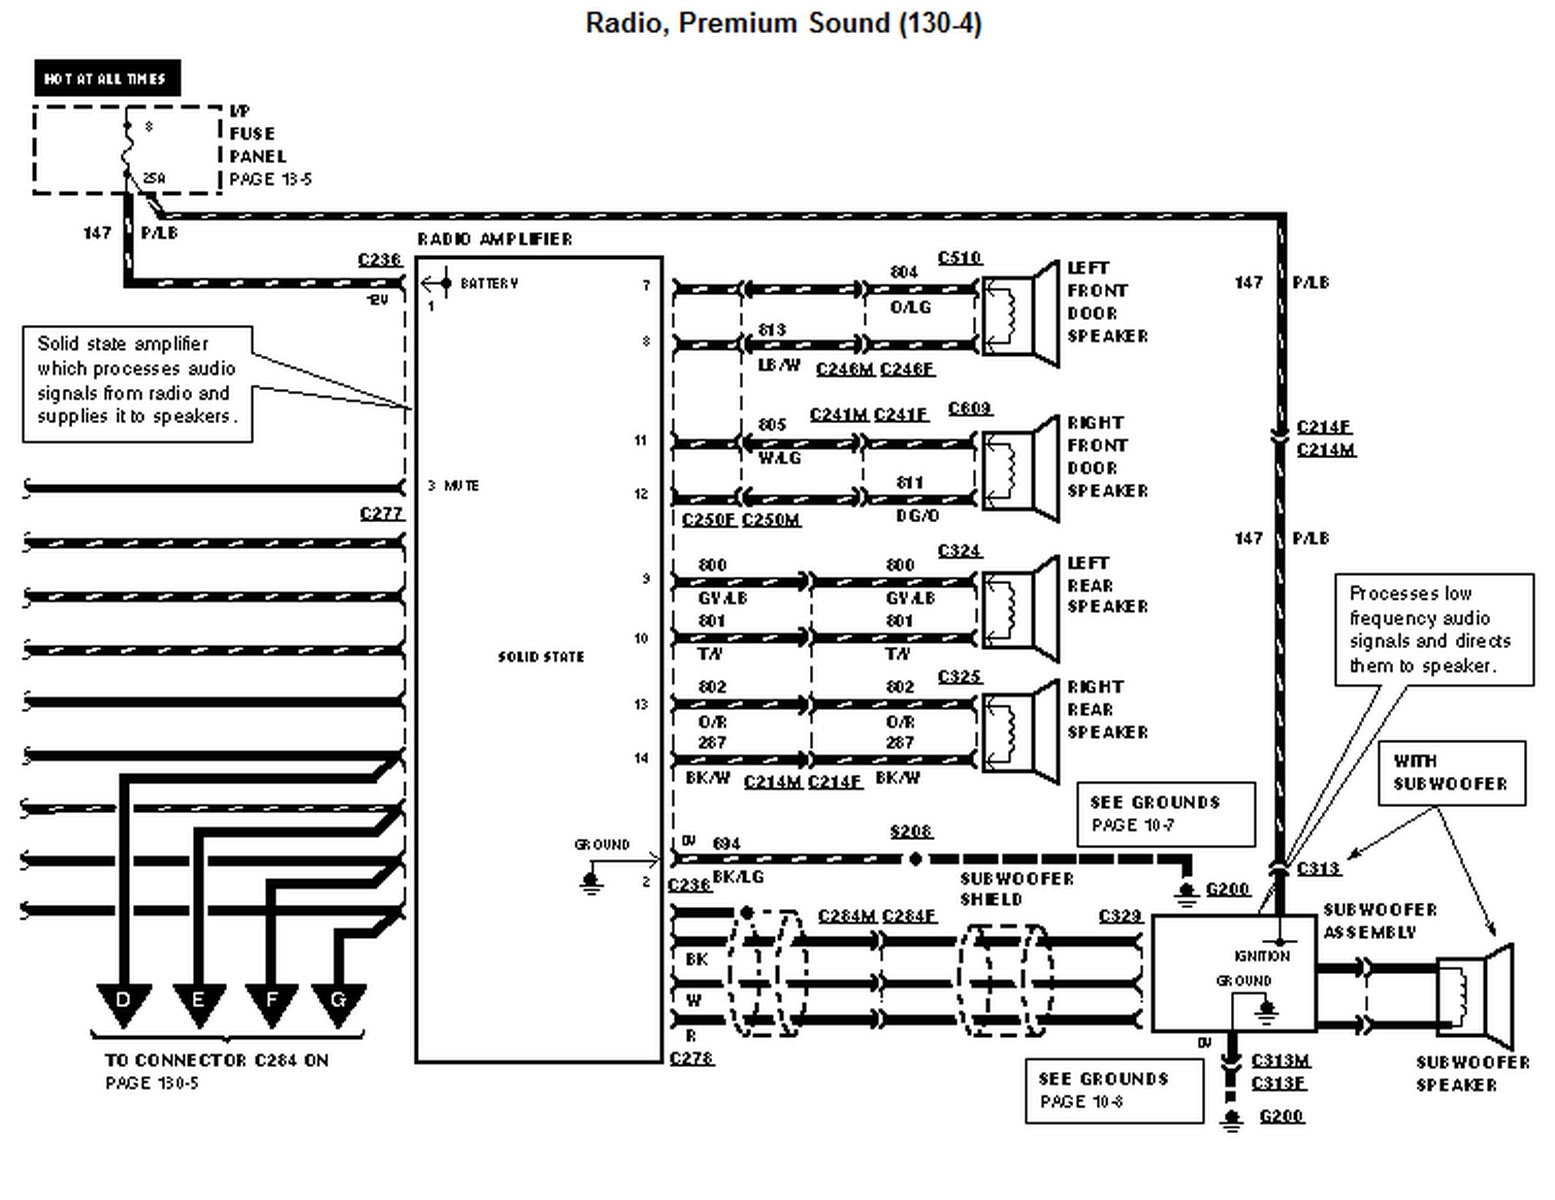 2008 ford f250 radio wiring diagram | free wiring diagram f250 stereo wiring diagram for 1988